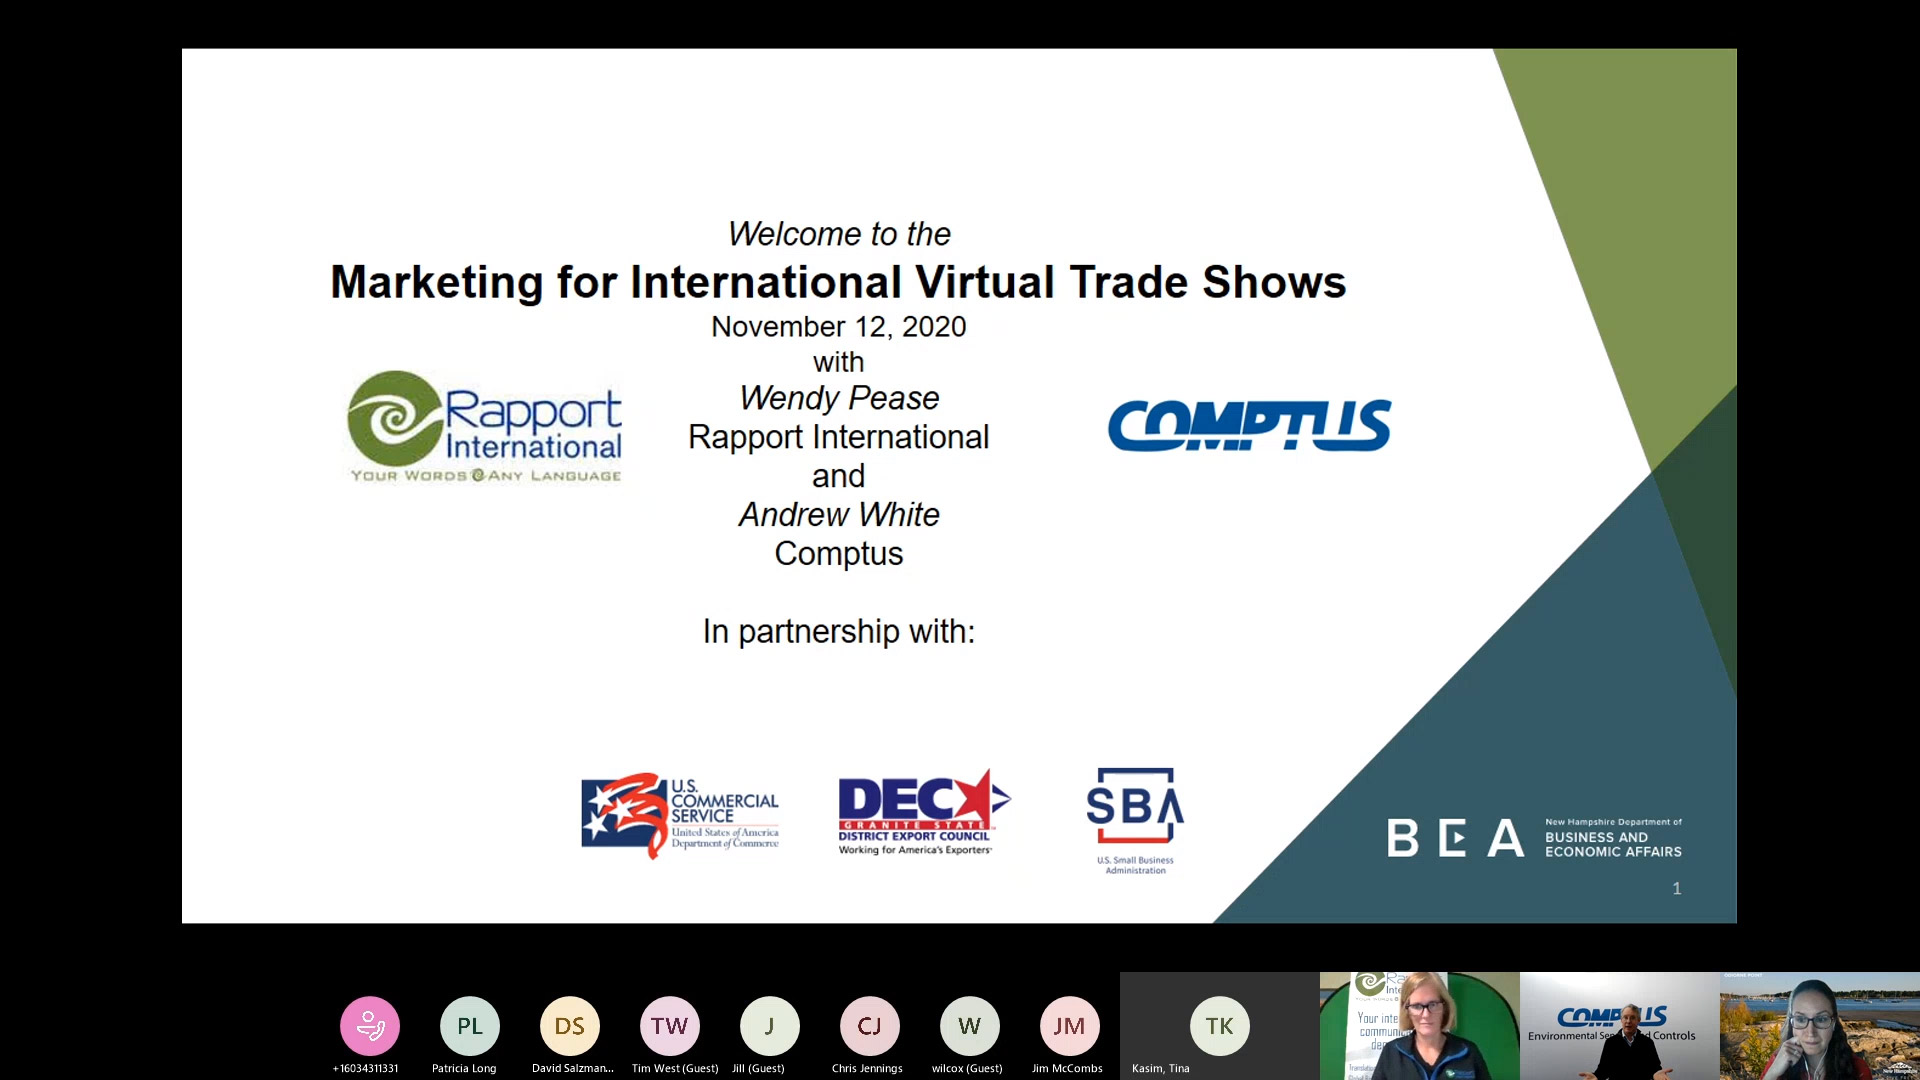 Marketing for International Virtual Trade Shows with slides